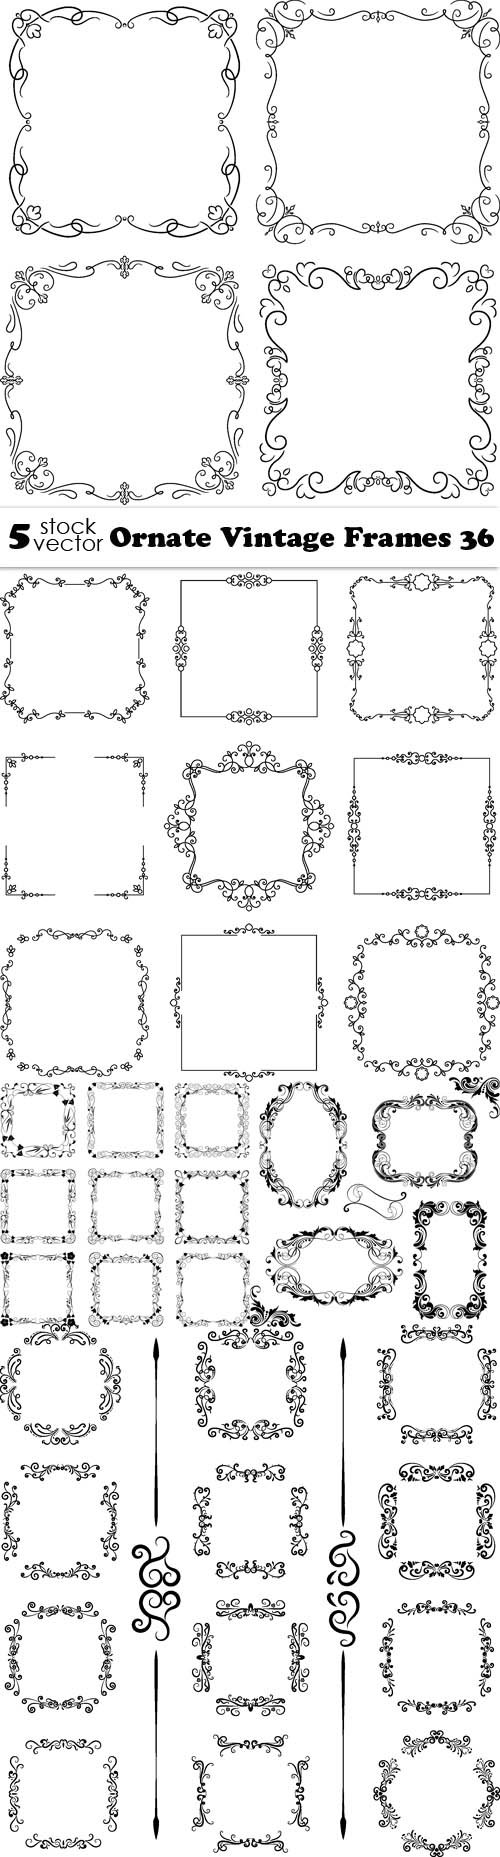 Vectors - Ornate Vintage Frames 36